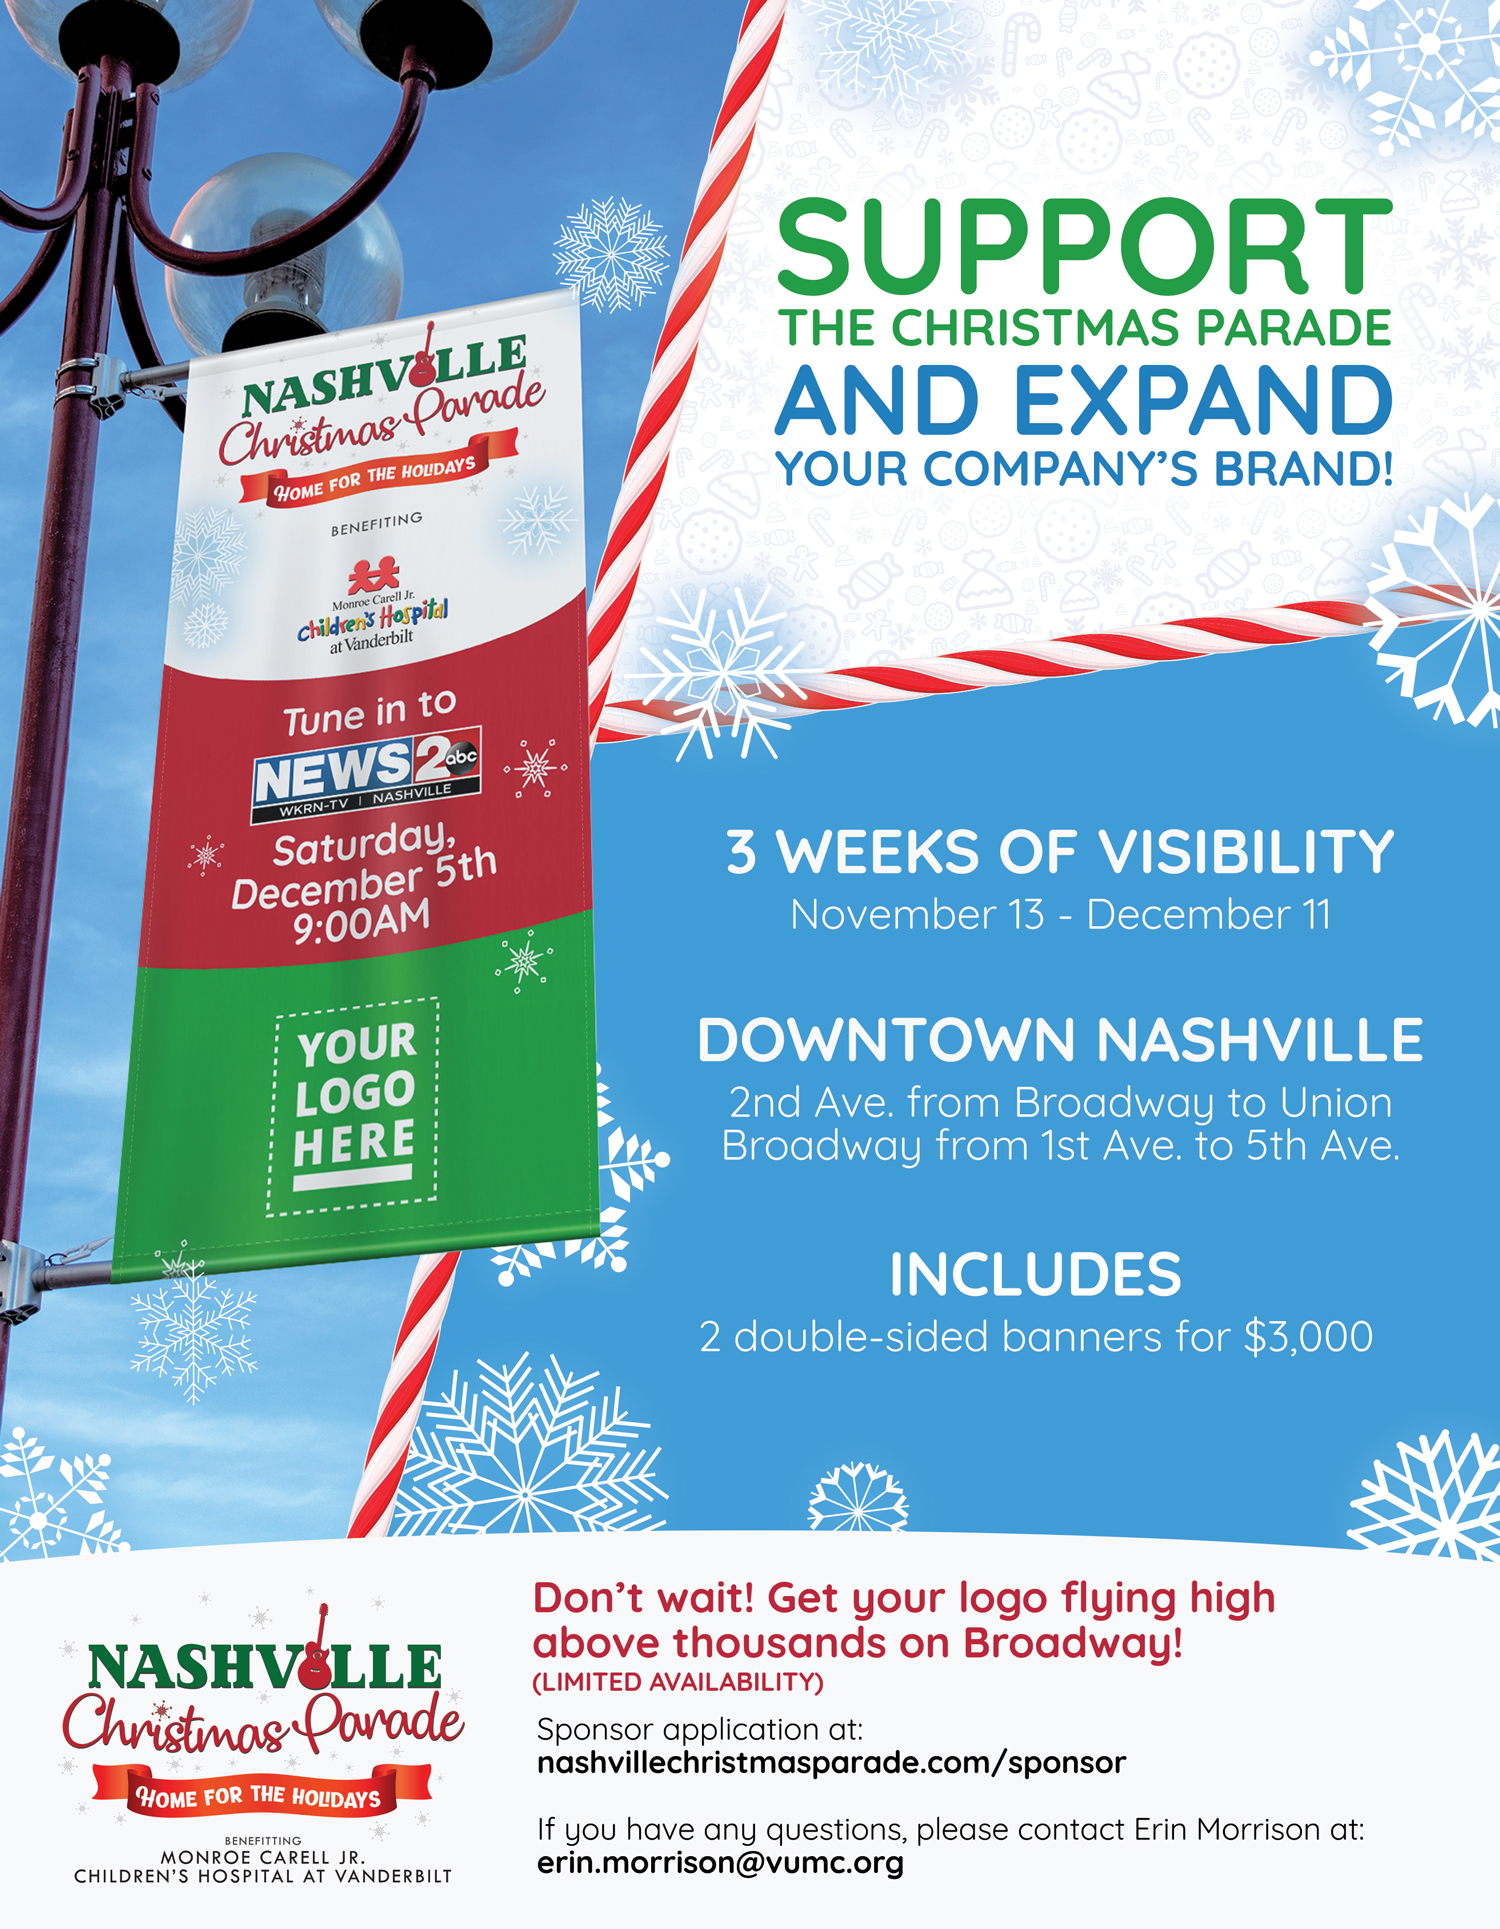 Sponsor application at: nashvillechristmasparade.com/sponsor  If you have any questions, please contact Erin Morrison at: erin.morrison@vumc.org